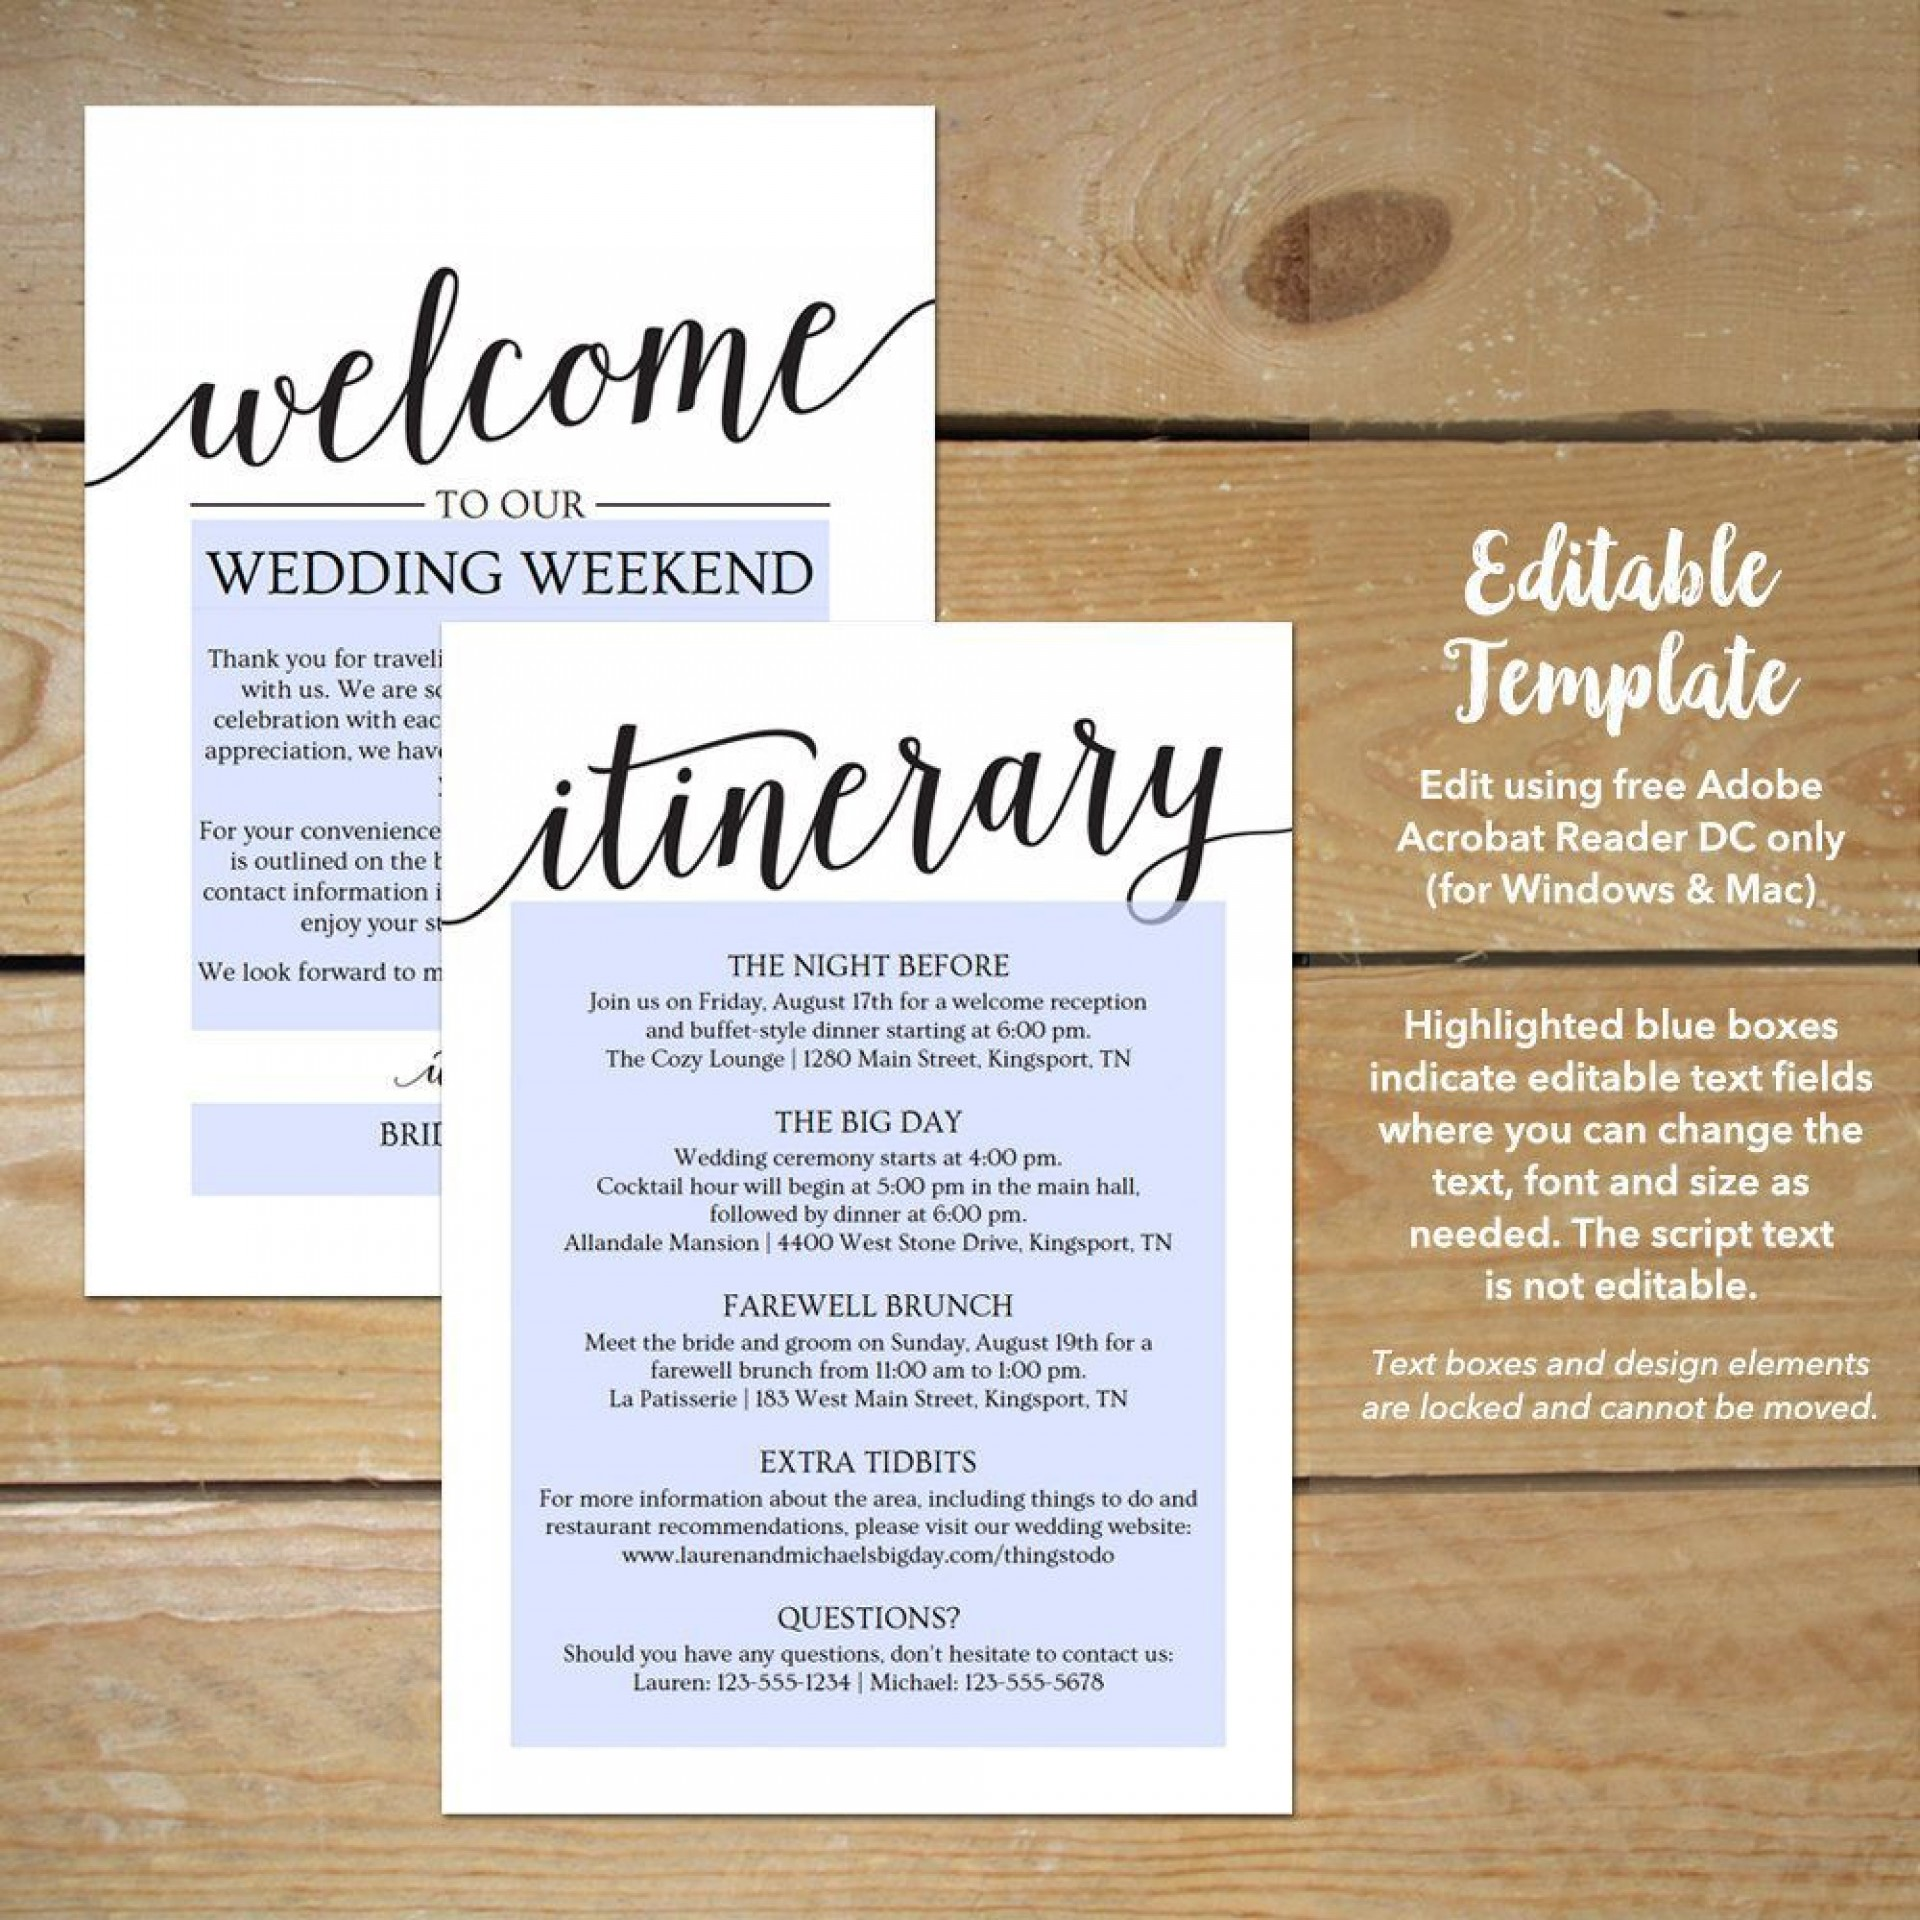 001 Awesome Wedding Welcome Bag Letter Template Image  Free1920